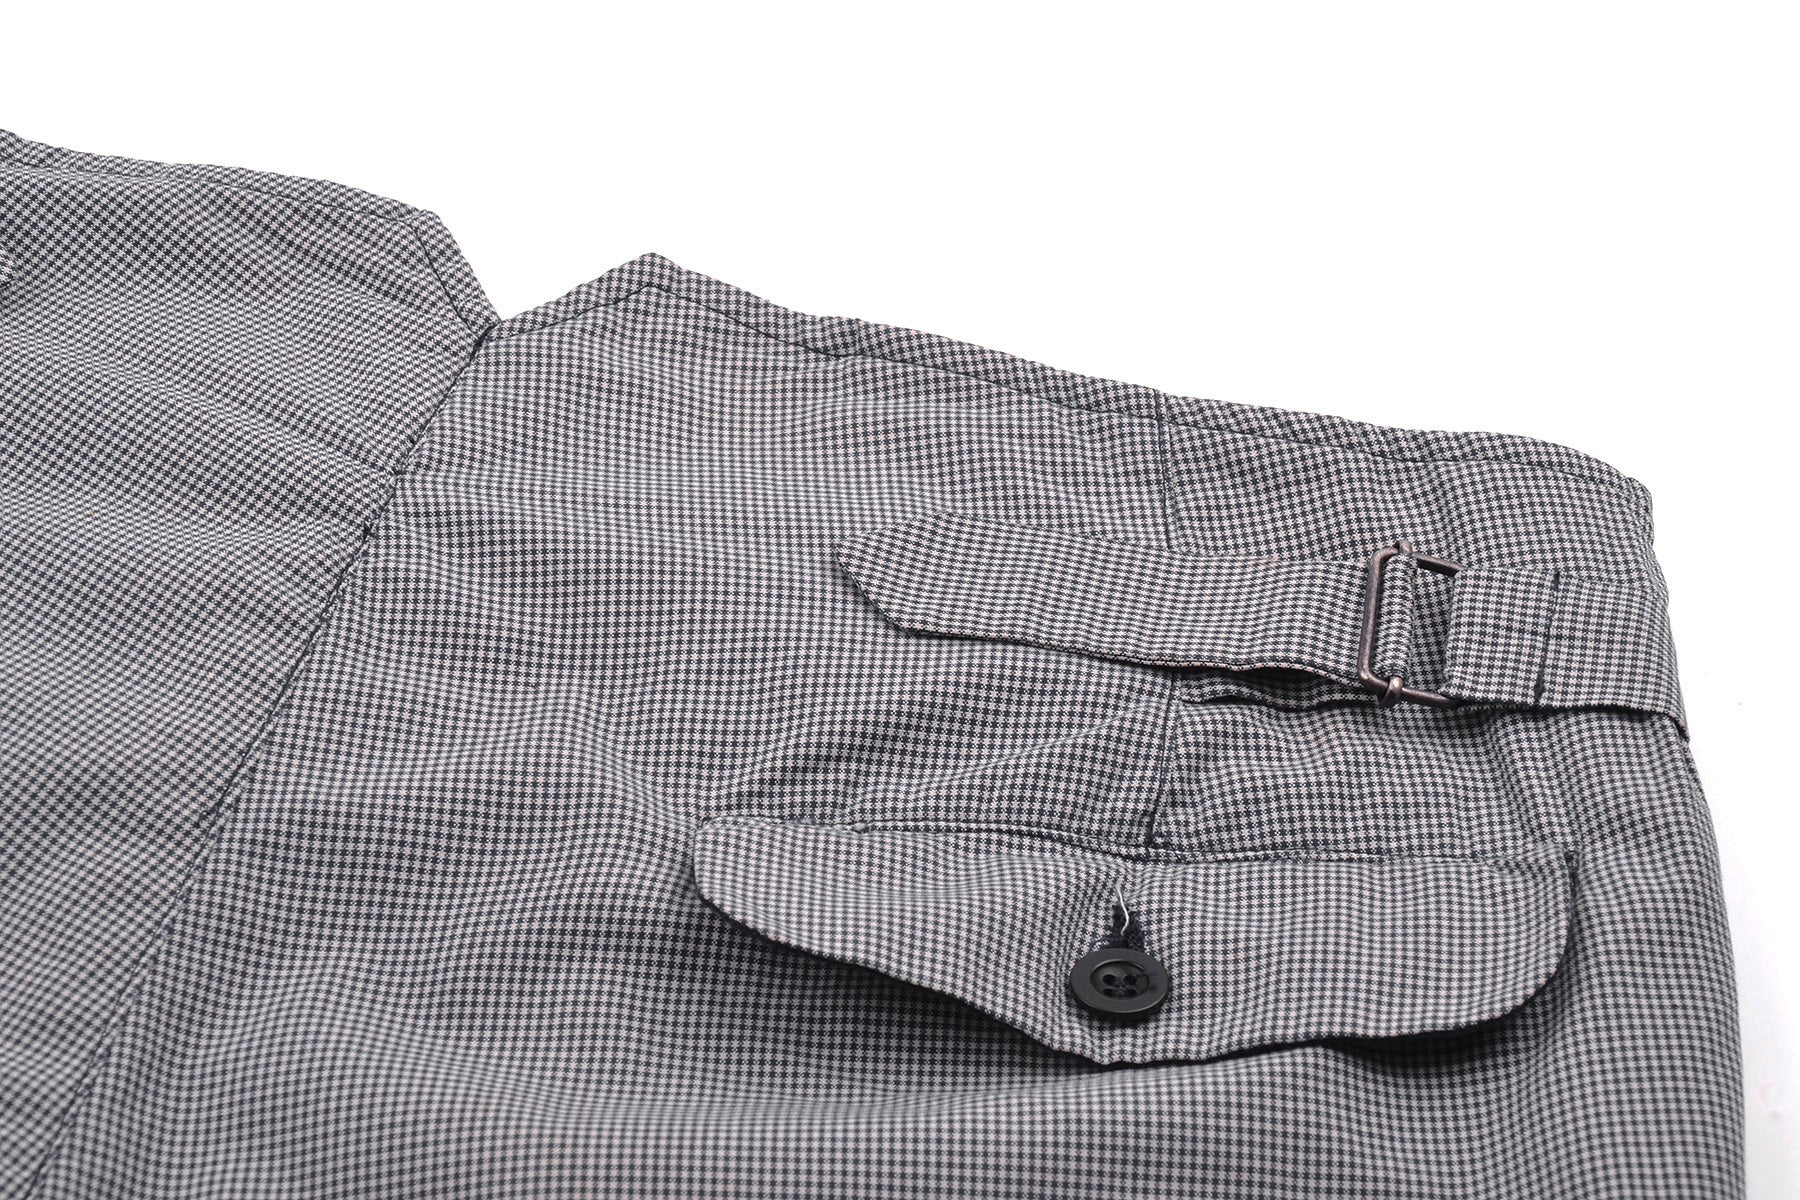 2004 S/S GINGHAM CHECK ANATOMICAL TROUSERS WITH WAIST STRAPS